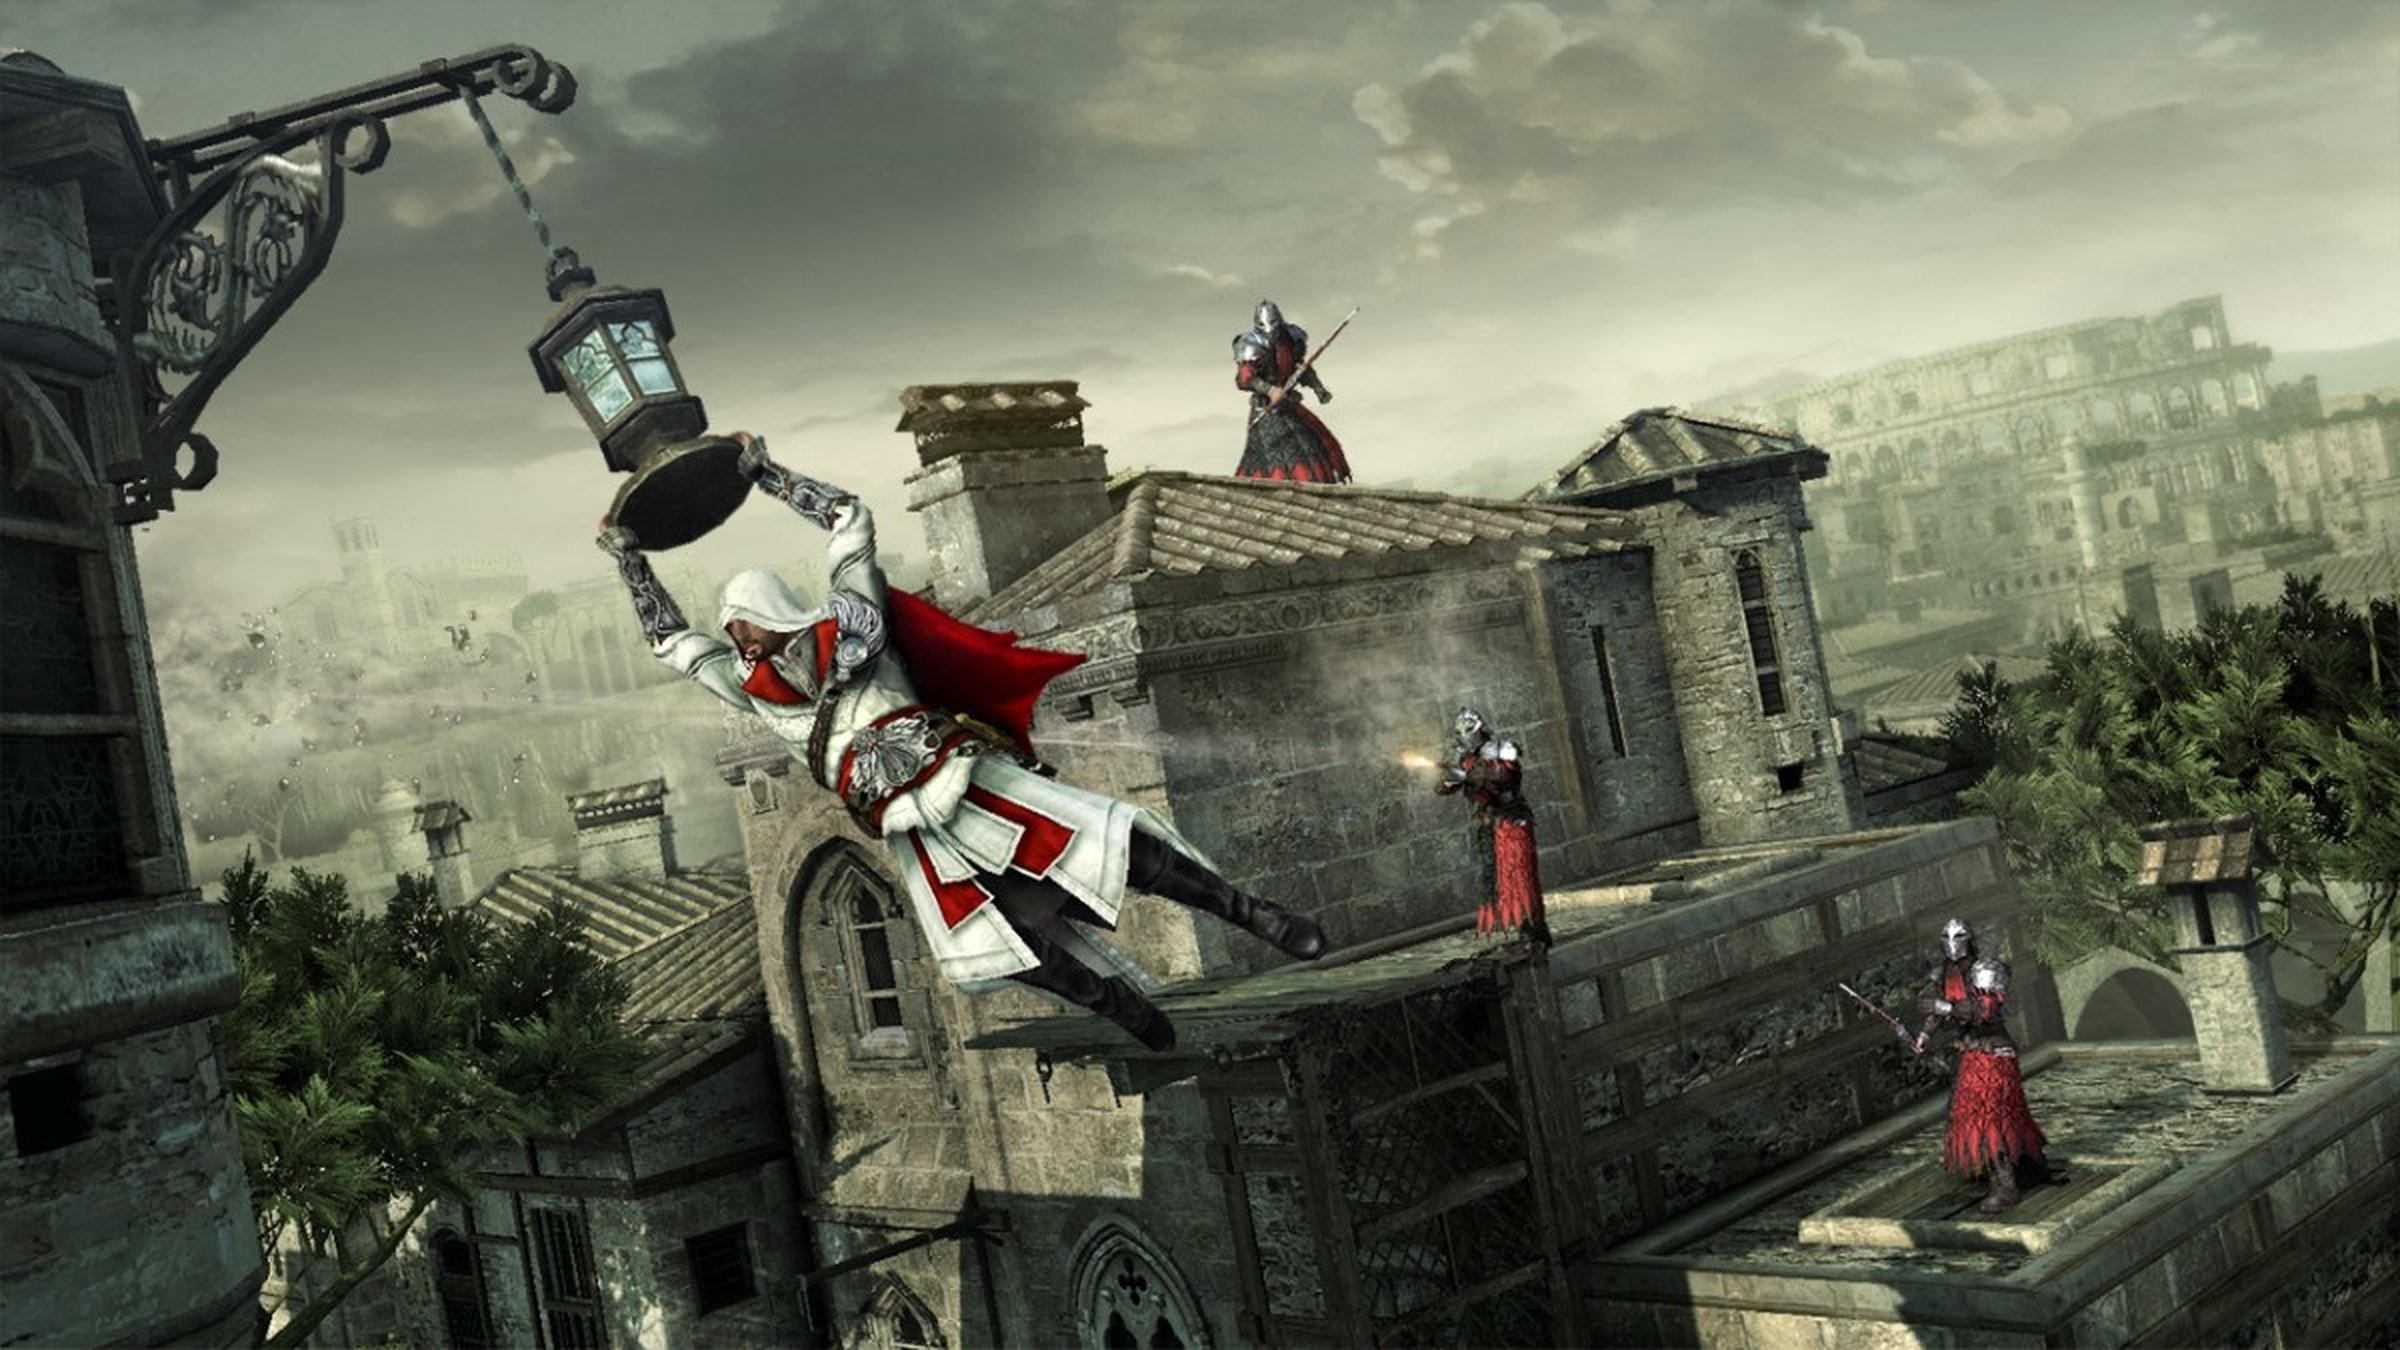 Assassin's Creed Brotherhood in Assassin's Creed Games, Ranked From Worst to Best - 1